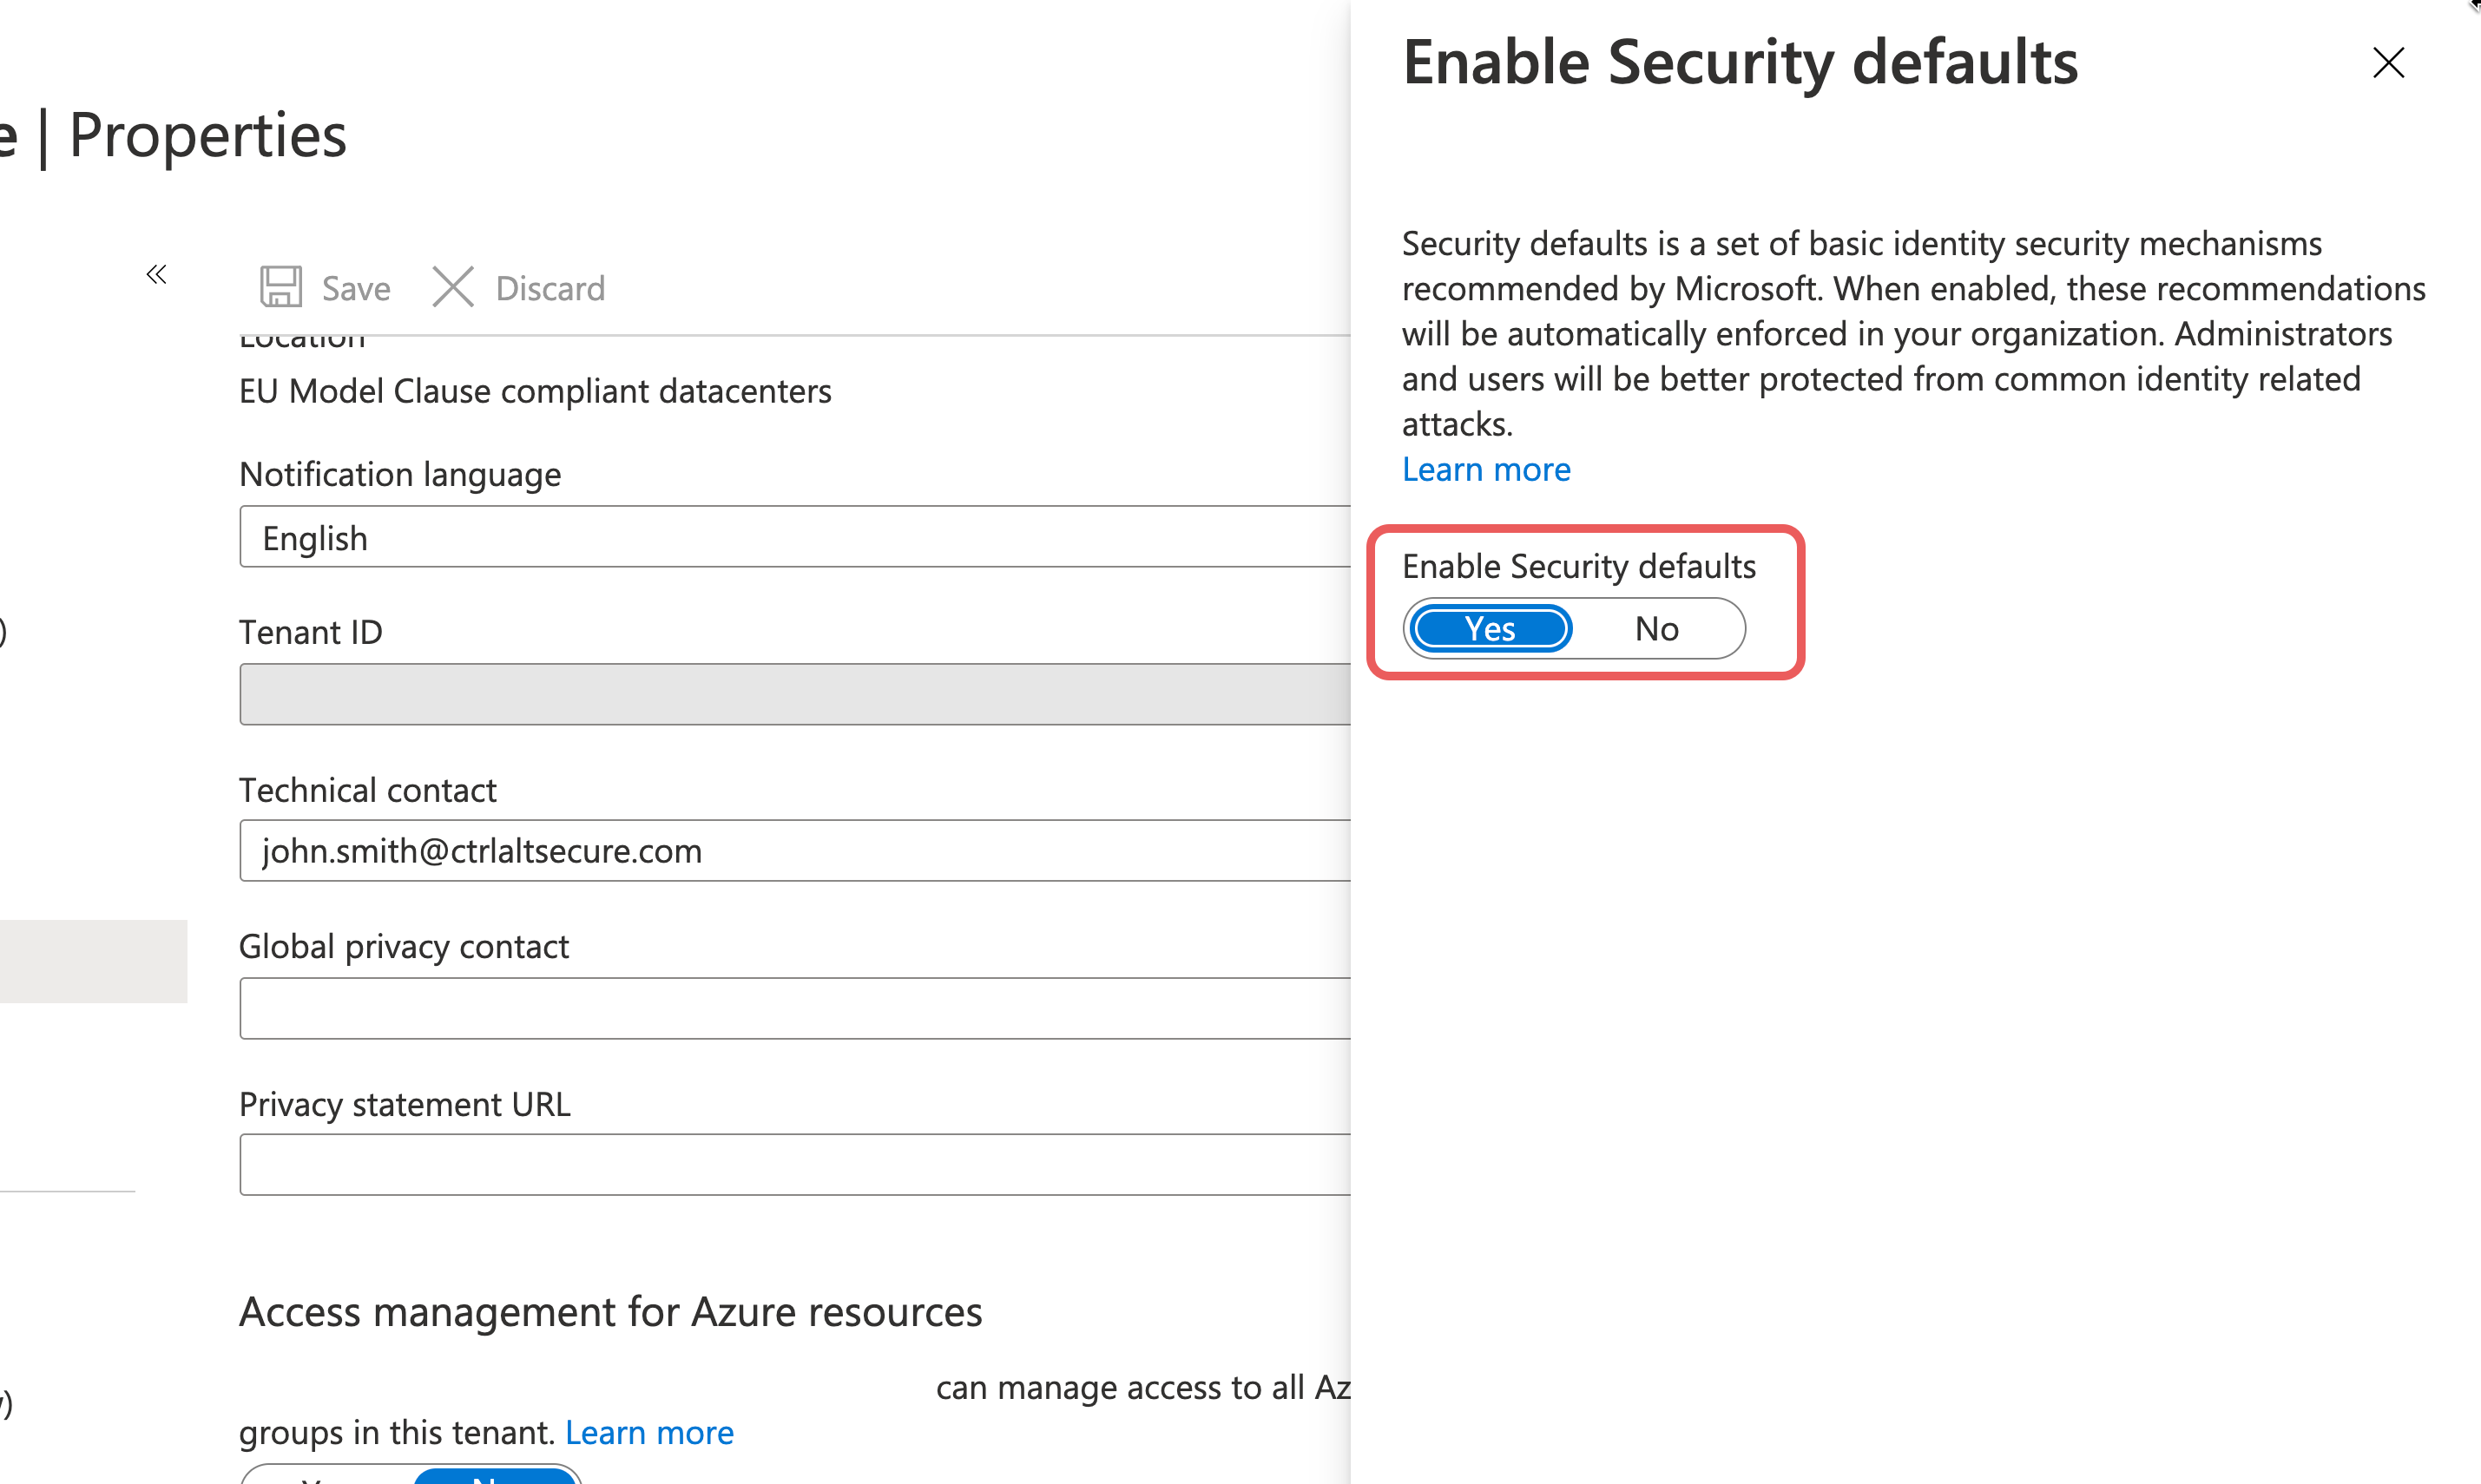 M365-enable-security-defaults